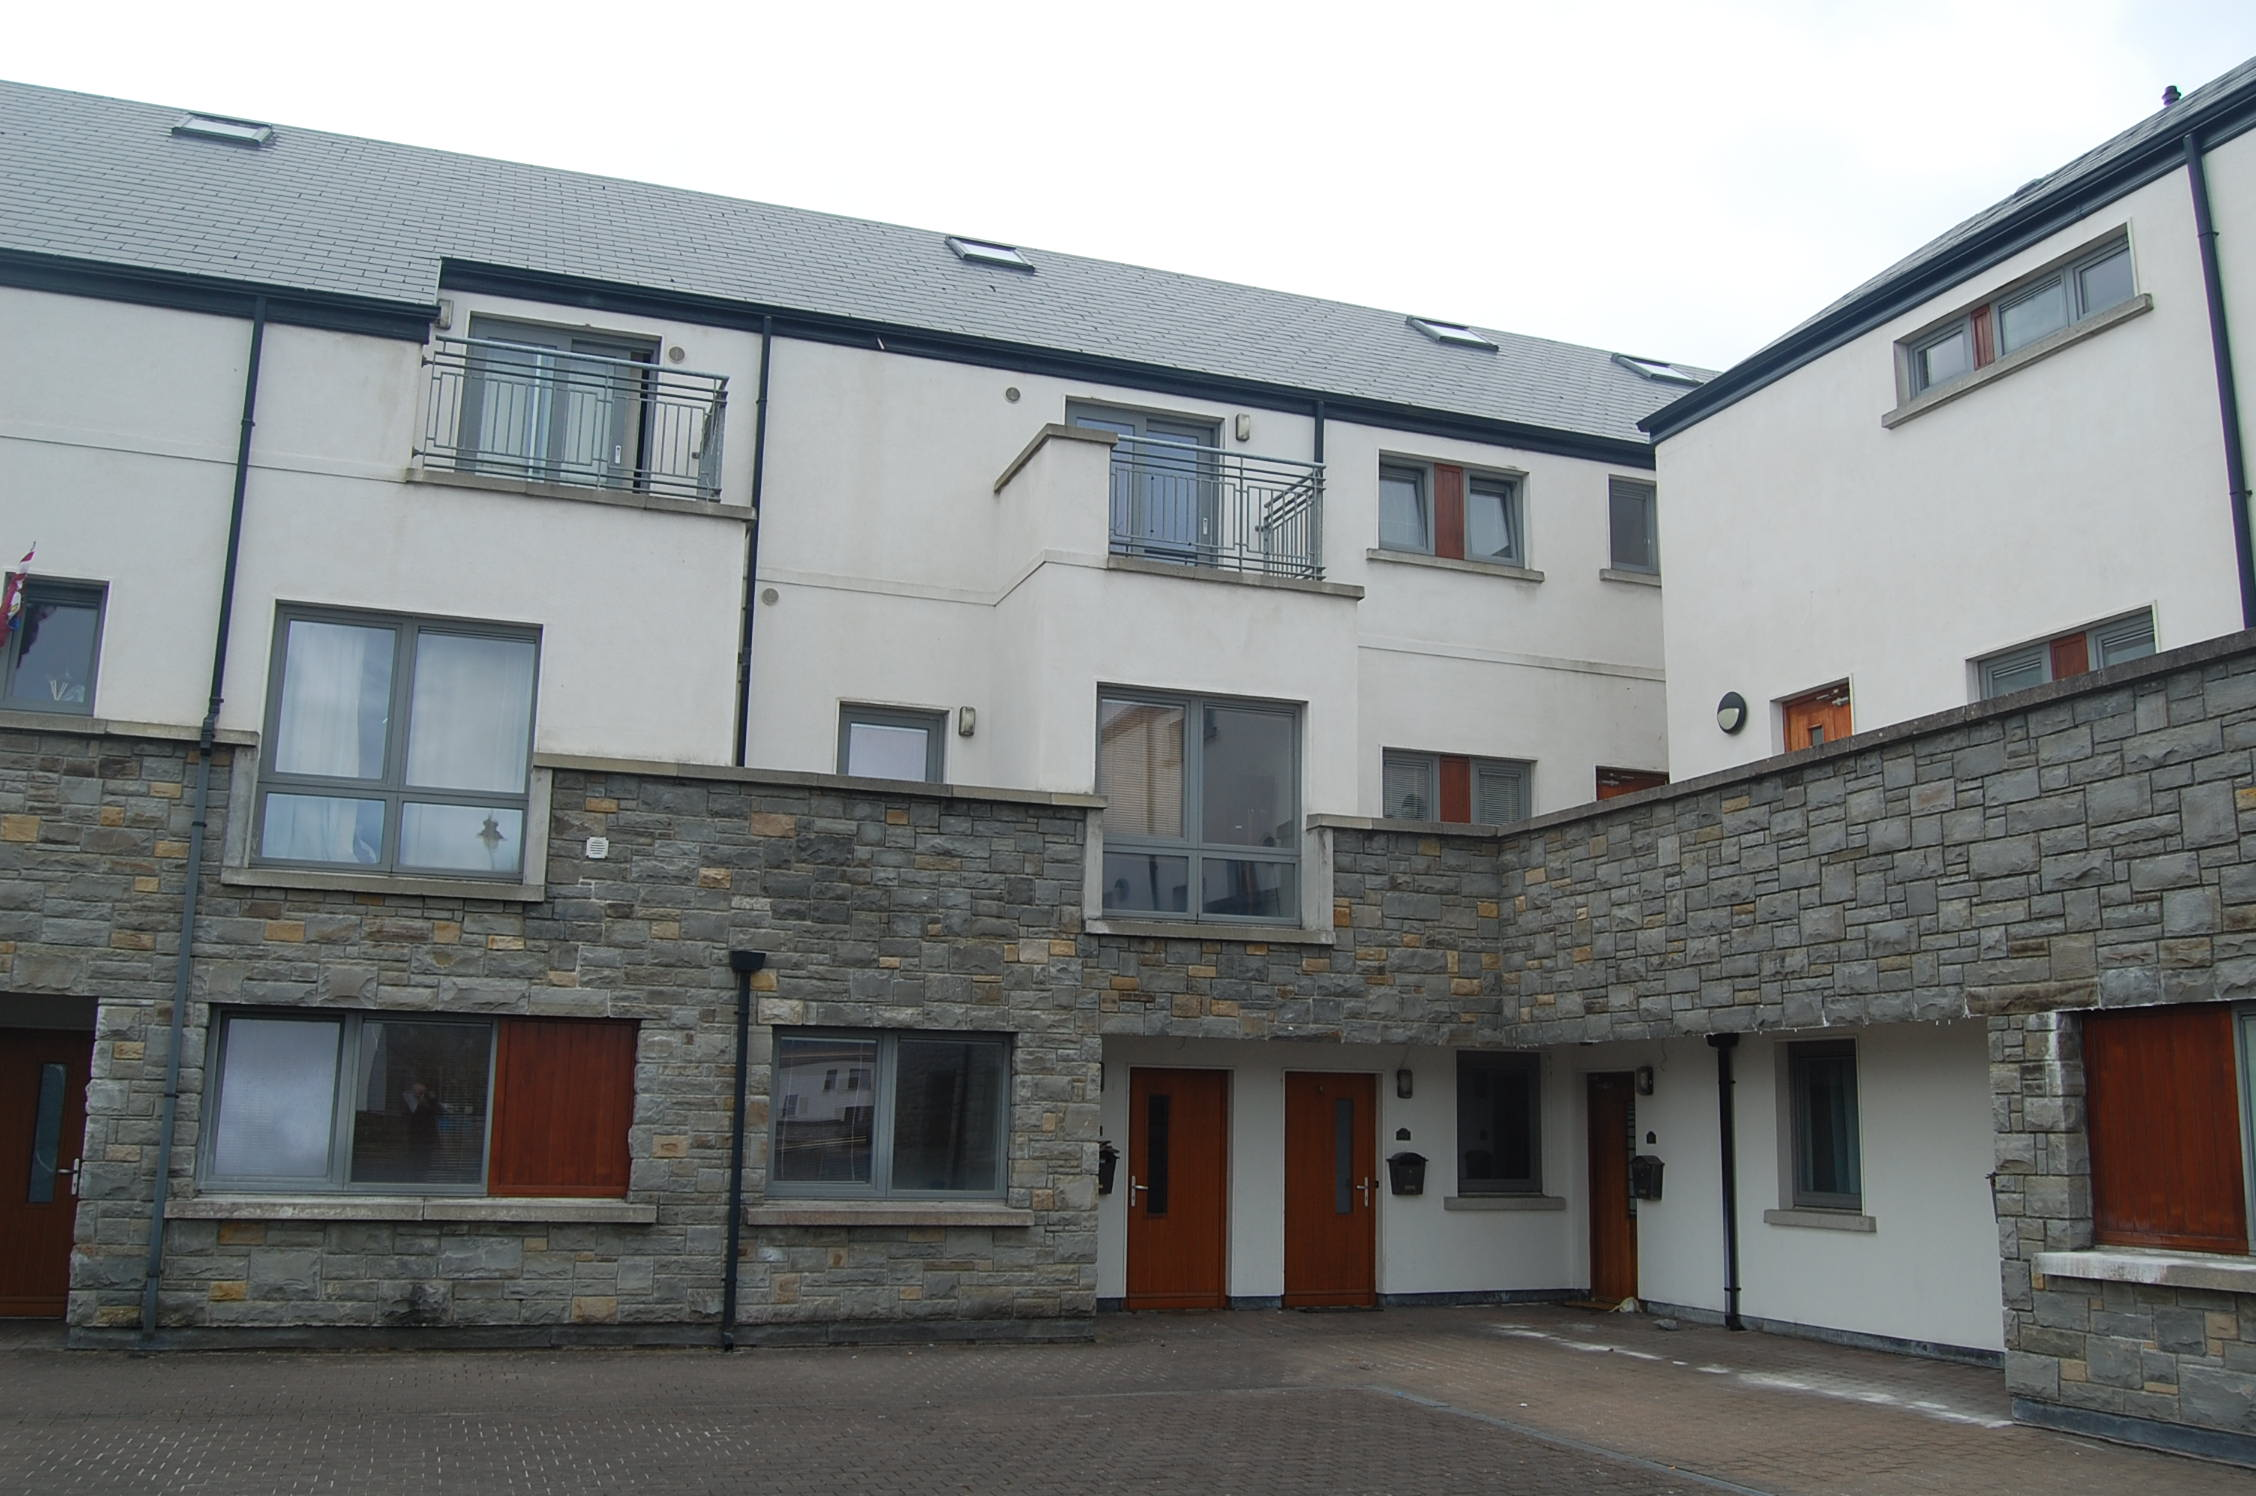 39 Caireal Mor, Headford Road, Galway, Headford Road, Galway City Suburbs Eircode: H91 PX82